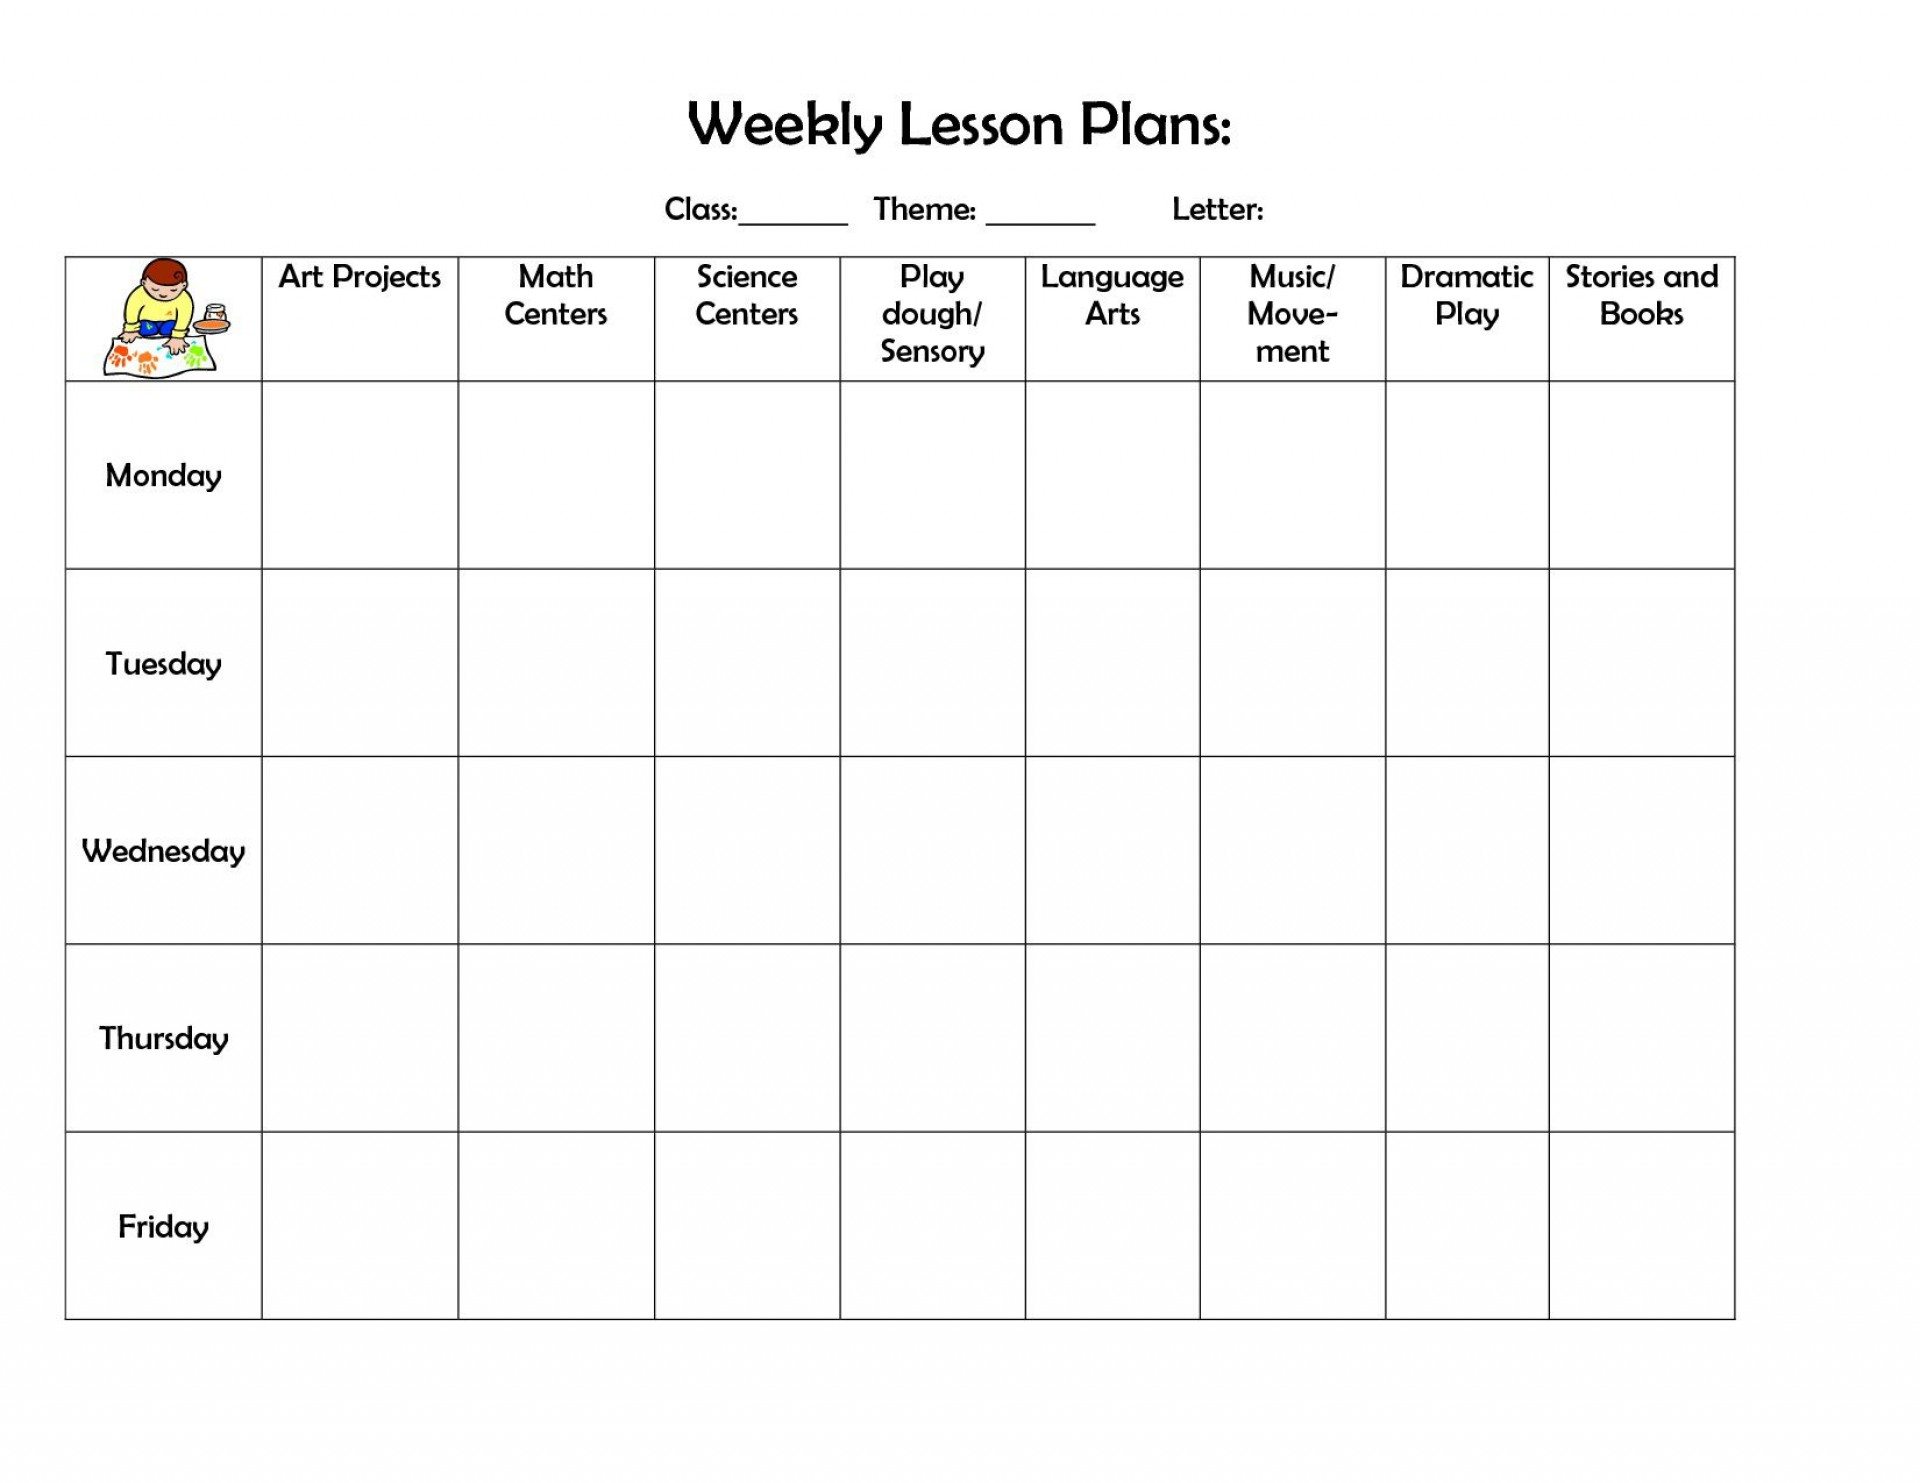 002 Amazing Weekly Lesson Plan Template Inspiration  Blank Free High School Danielson Google Doc1920